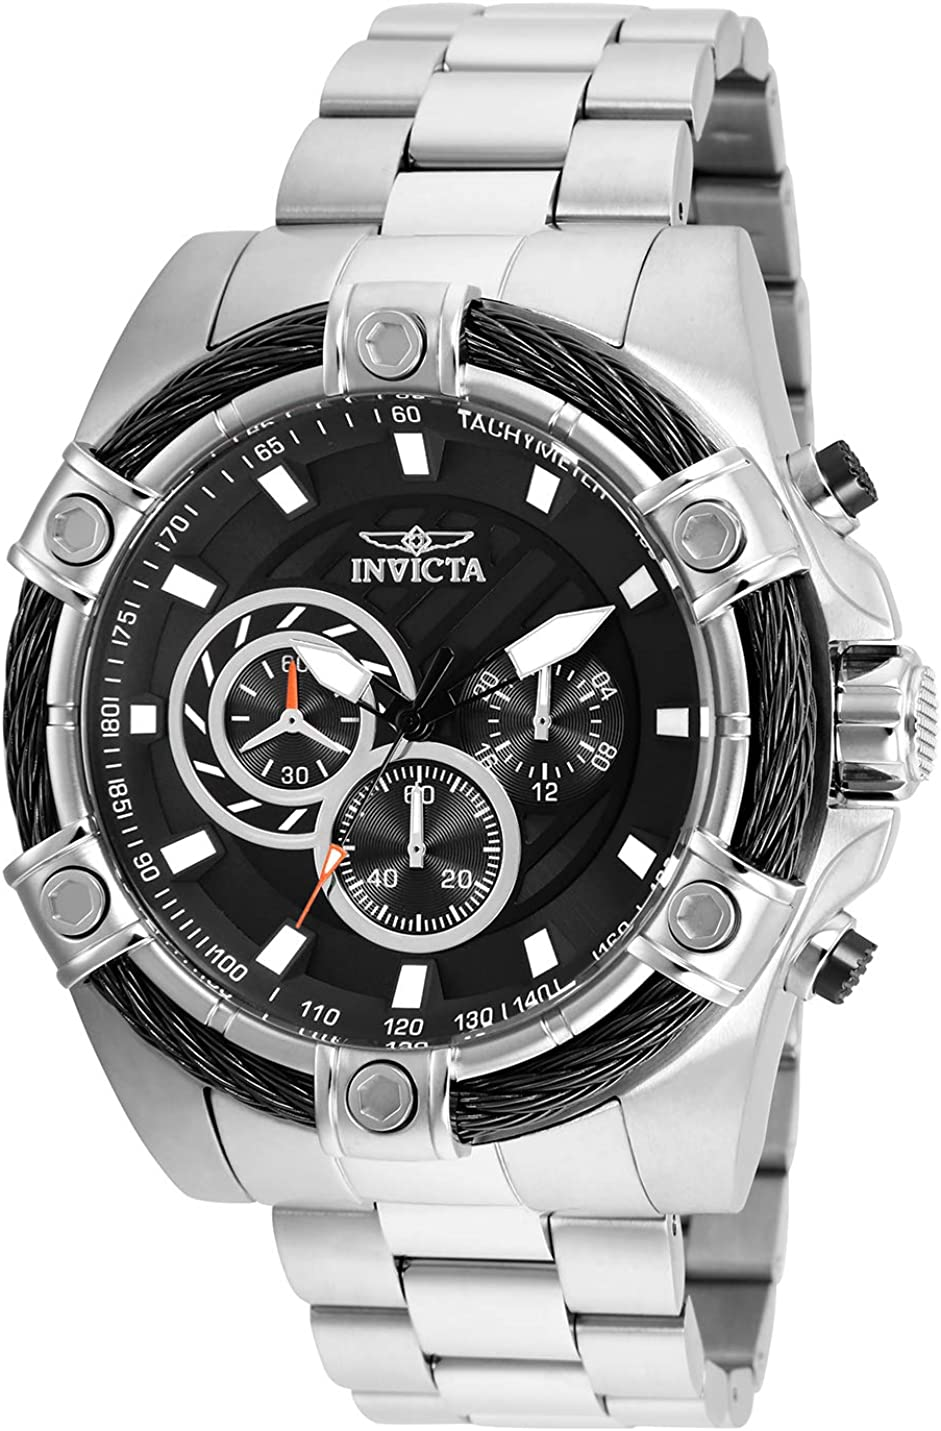 Invicta Men s Bolt Quartz Watch with Stainless-Steel Strap, Silver, 1 Model 25512